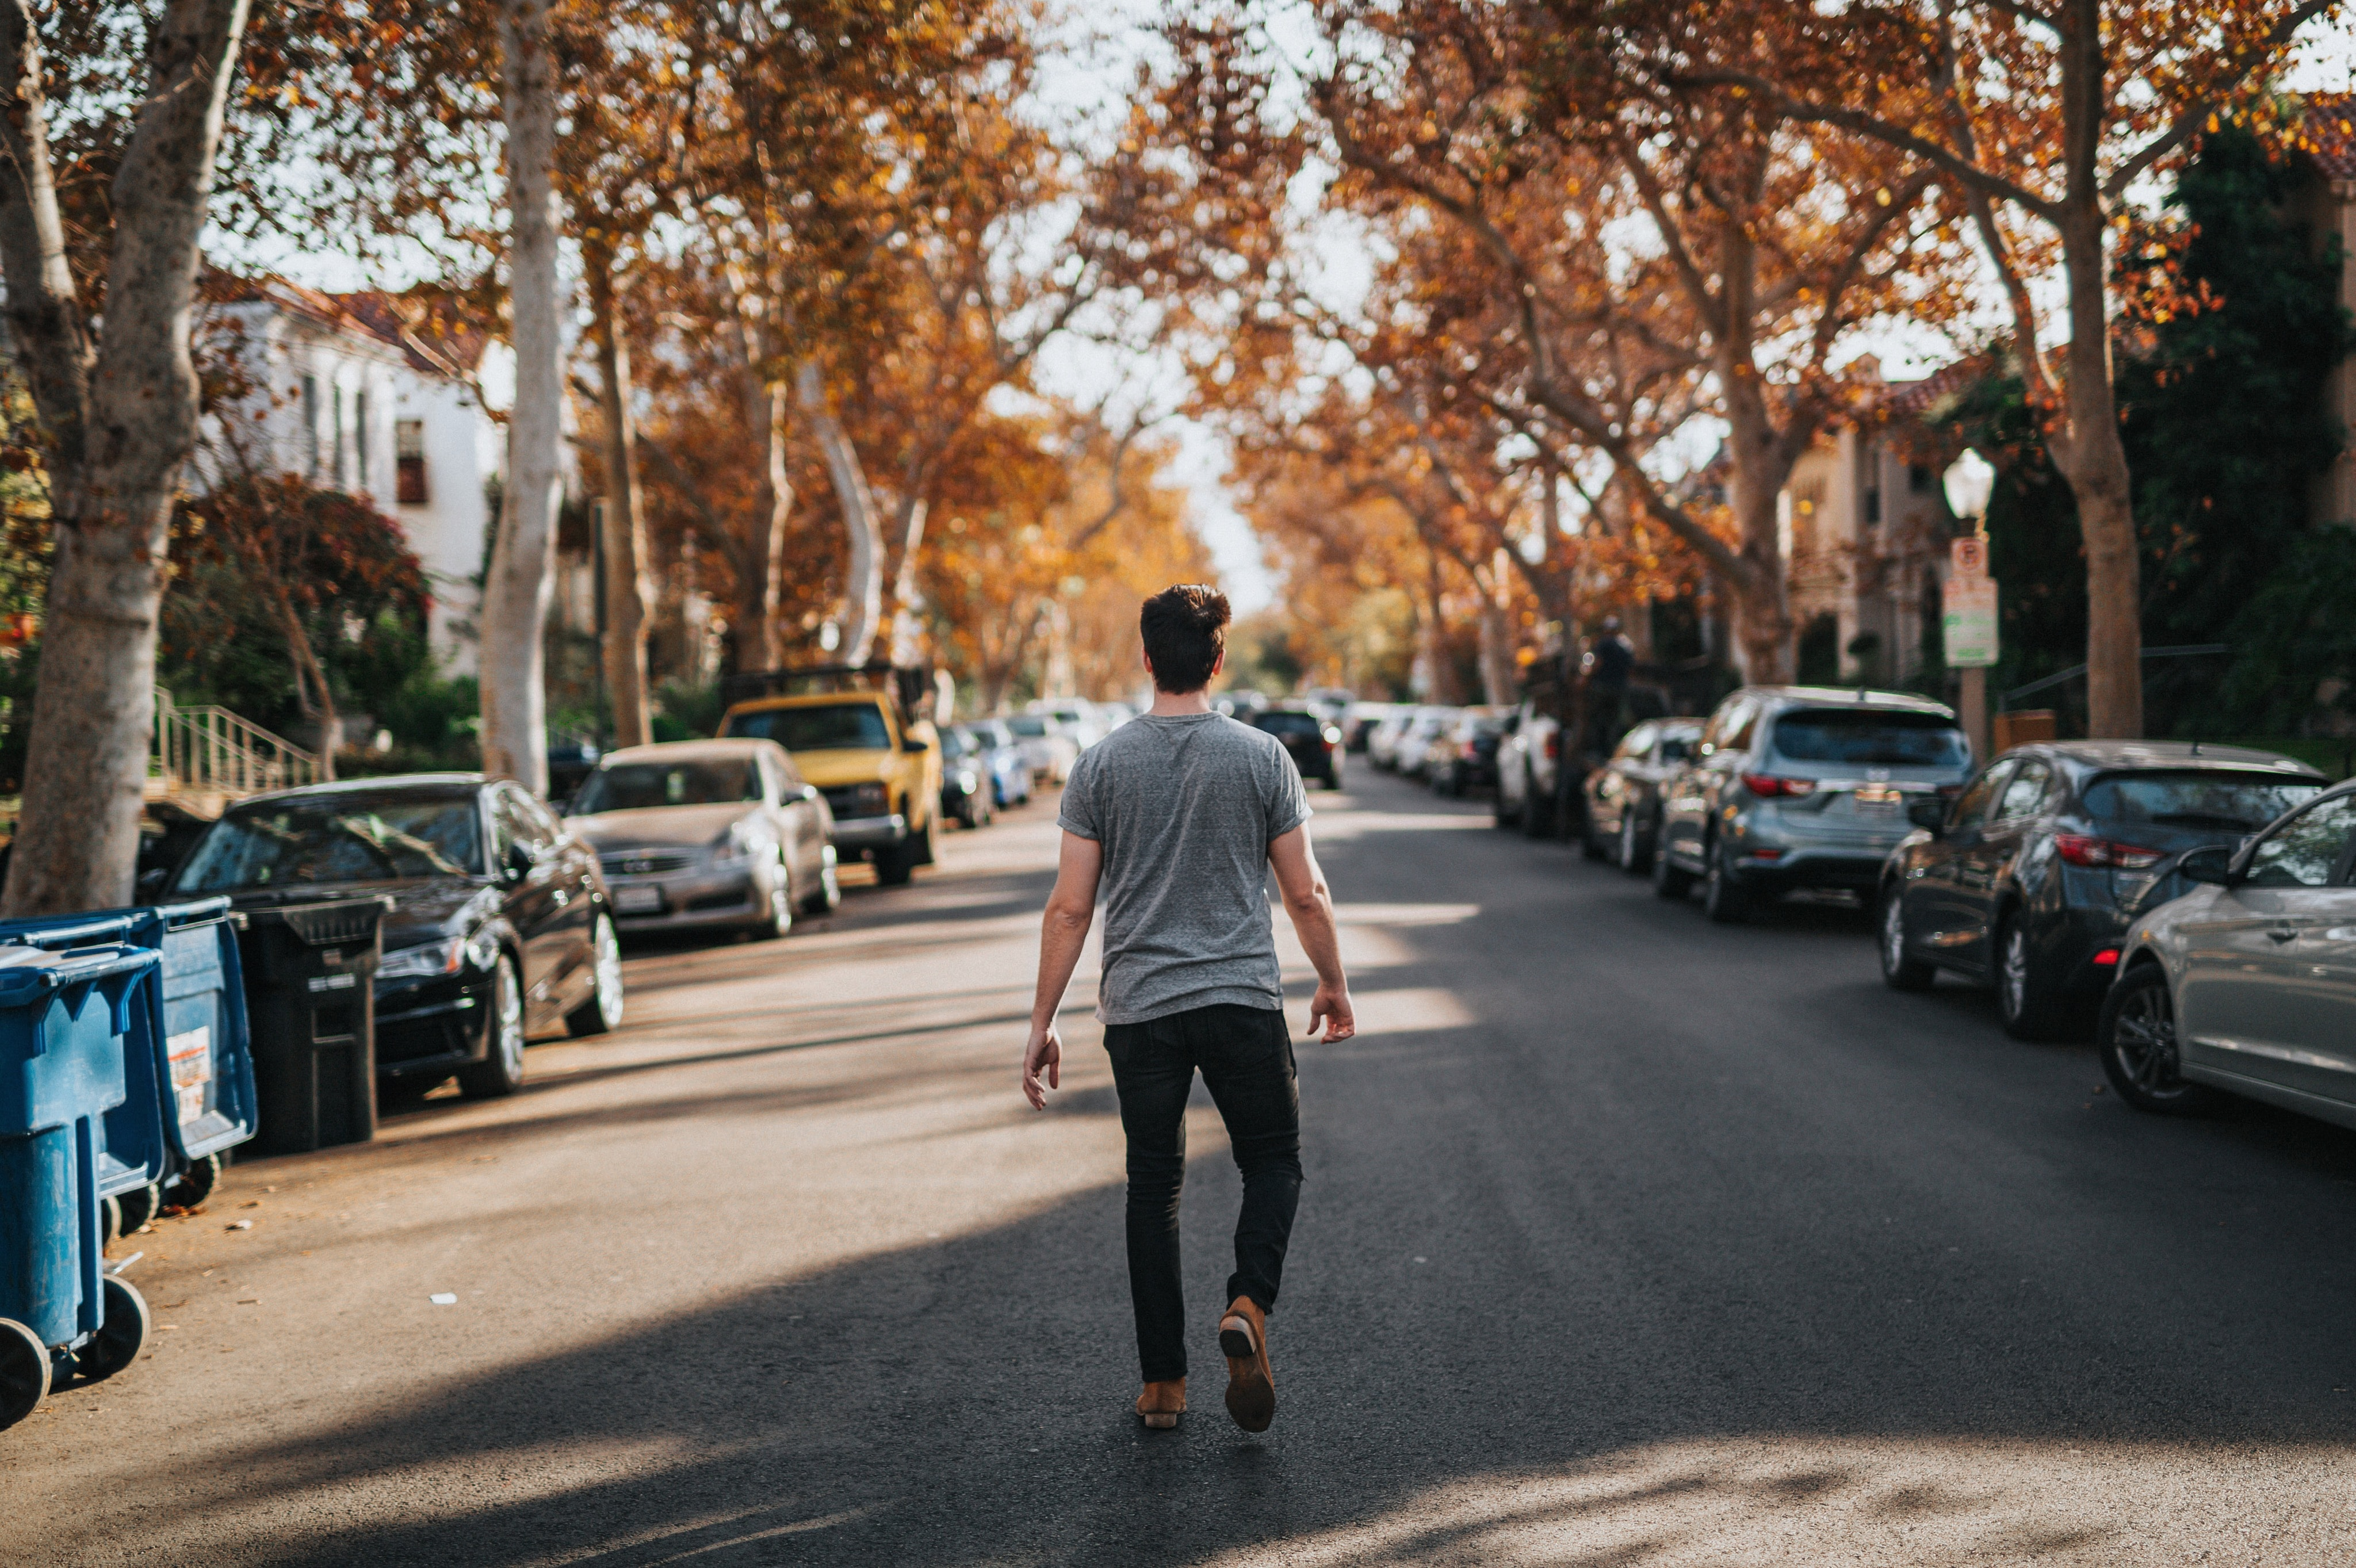 man walking on road between parked vehicles